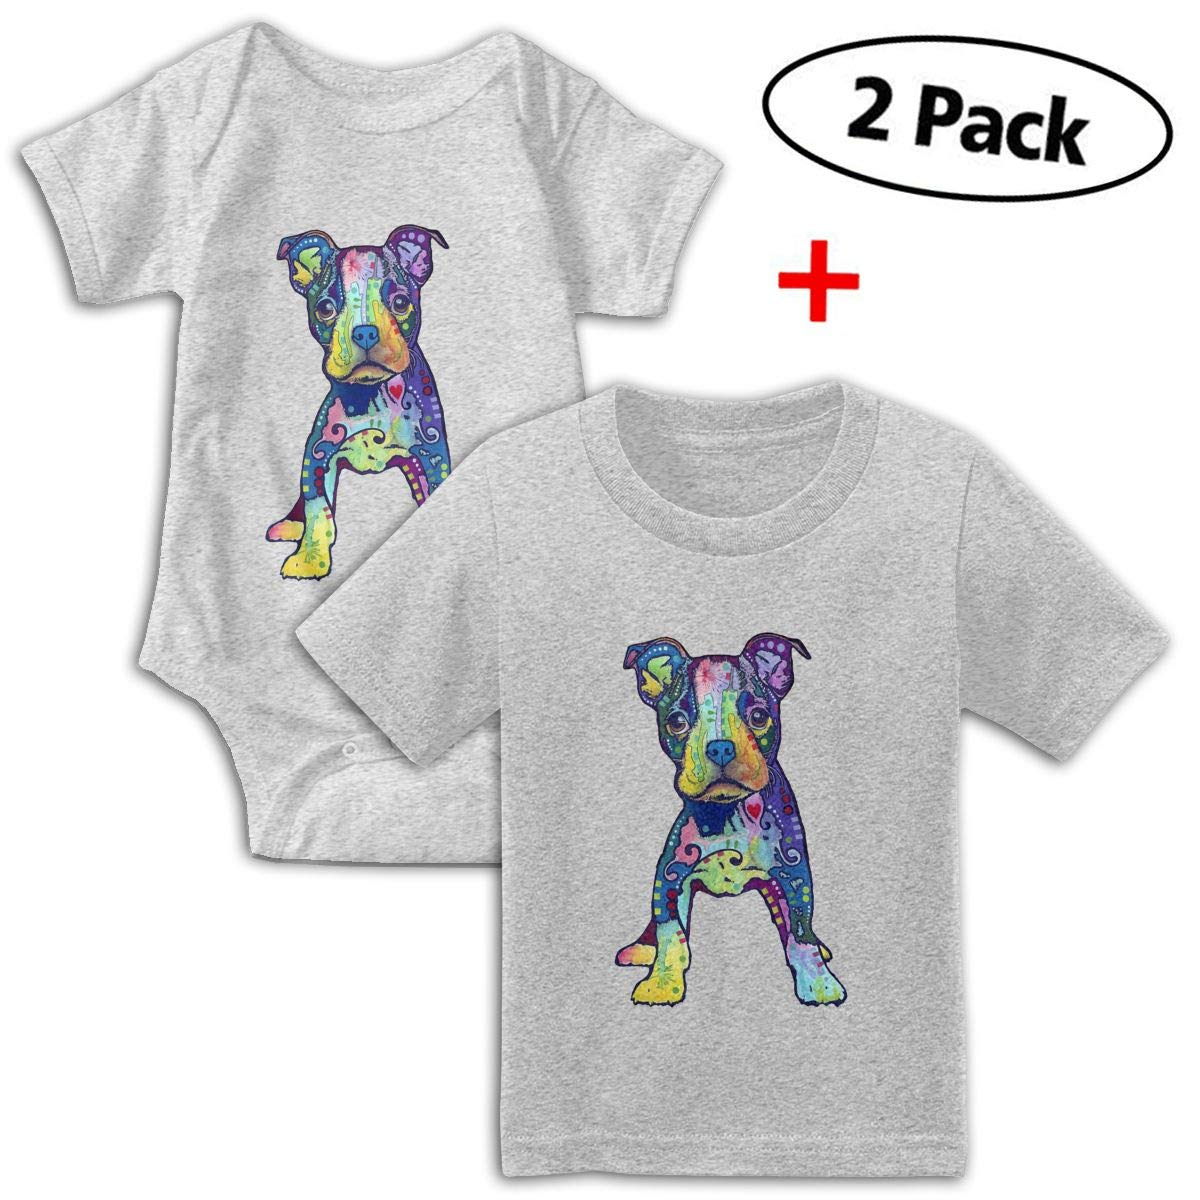 KAYERDELLE Puppy Graffiti Pop Babys Boys /& Girls Short Sleeve Jumpsuit Outfits and T-Shirt